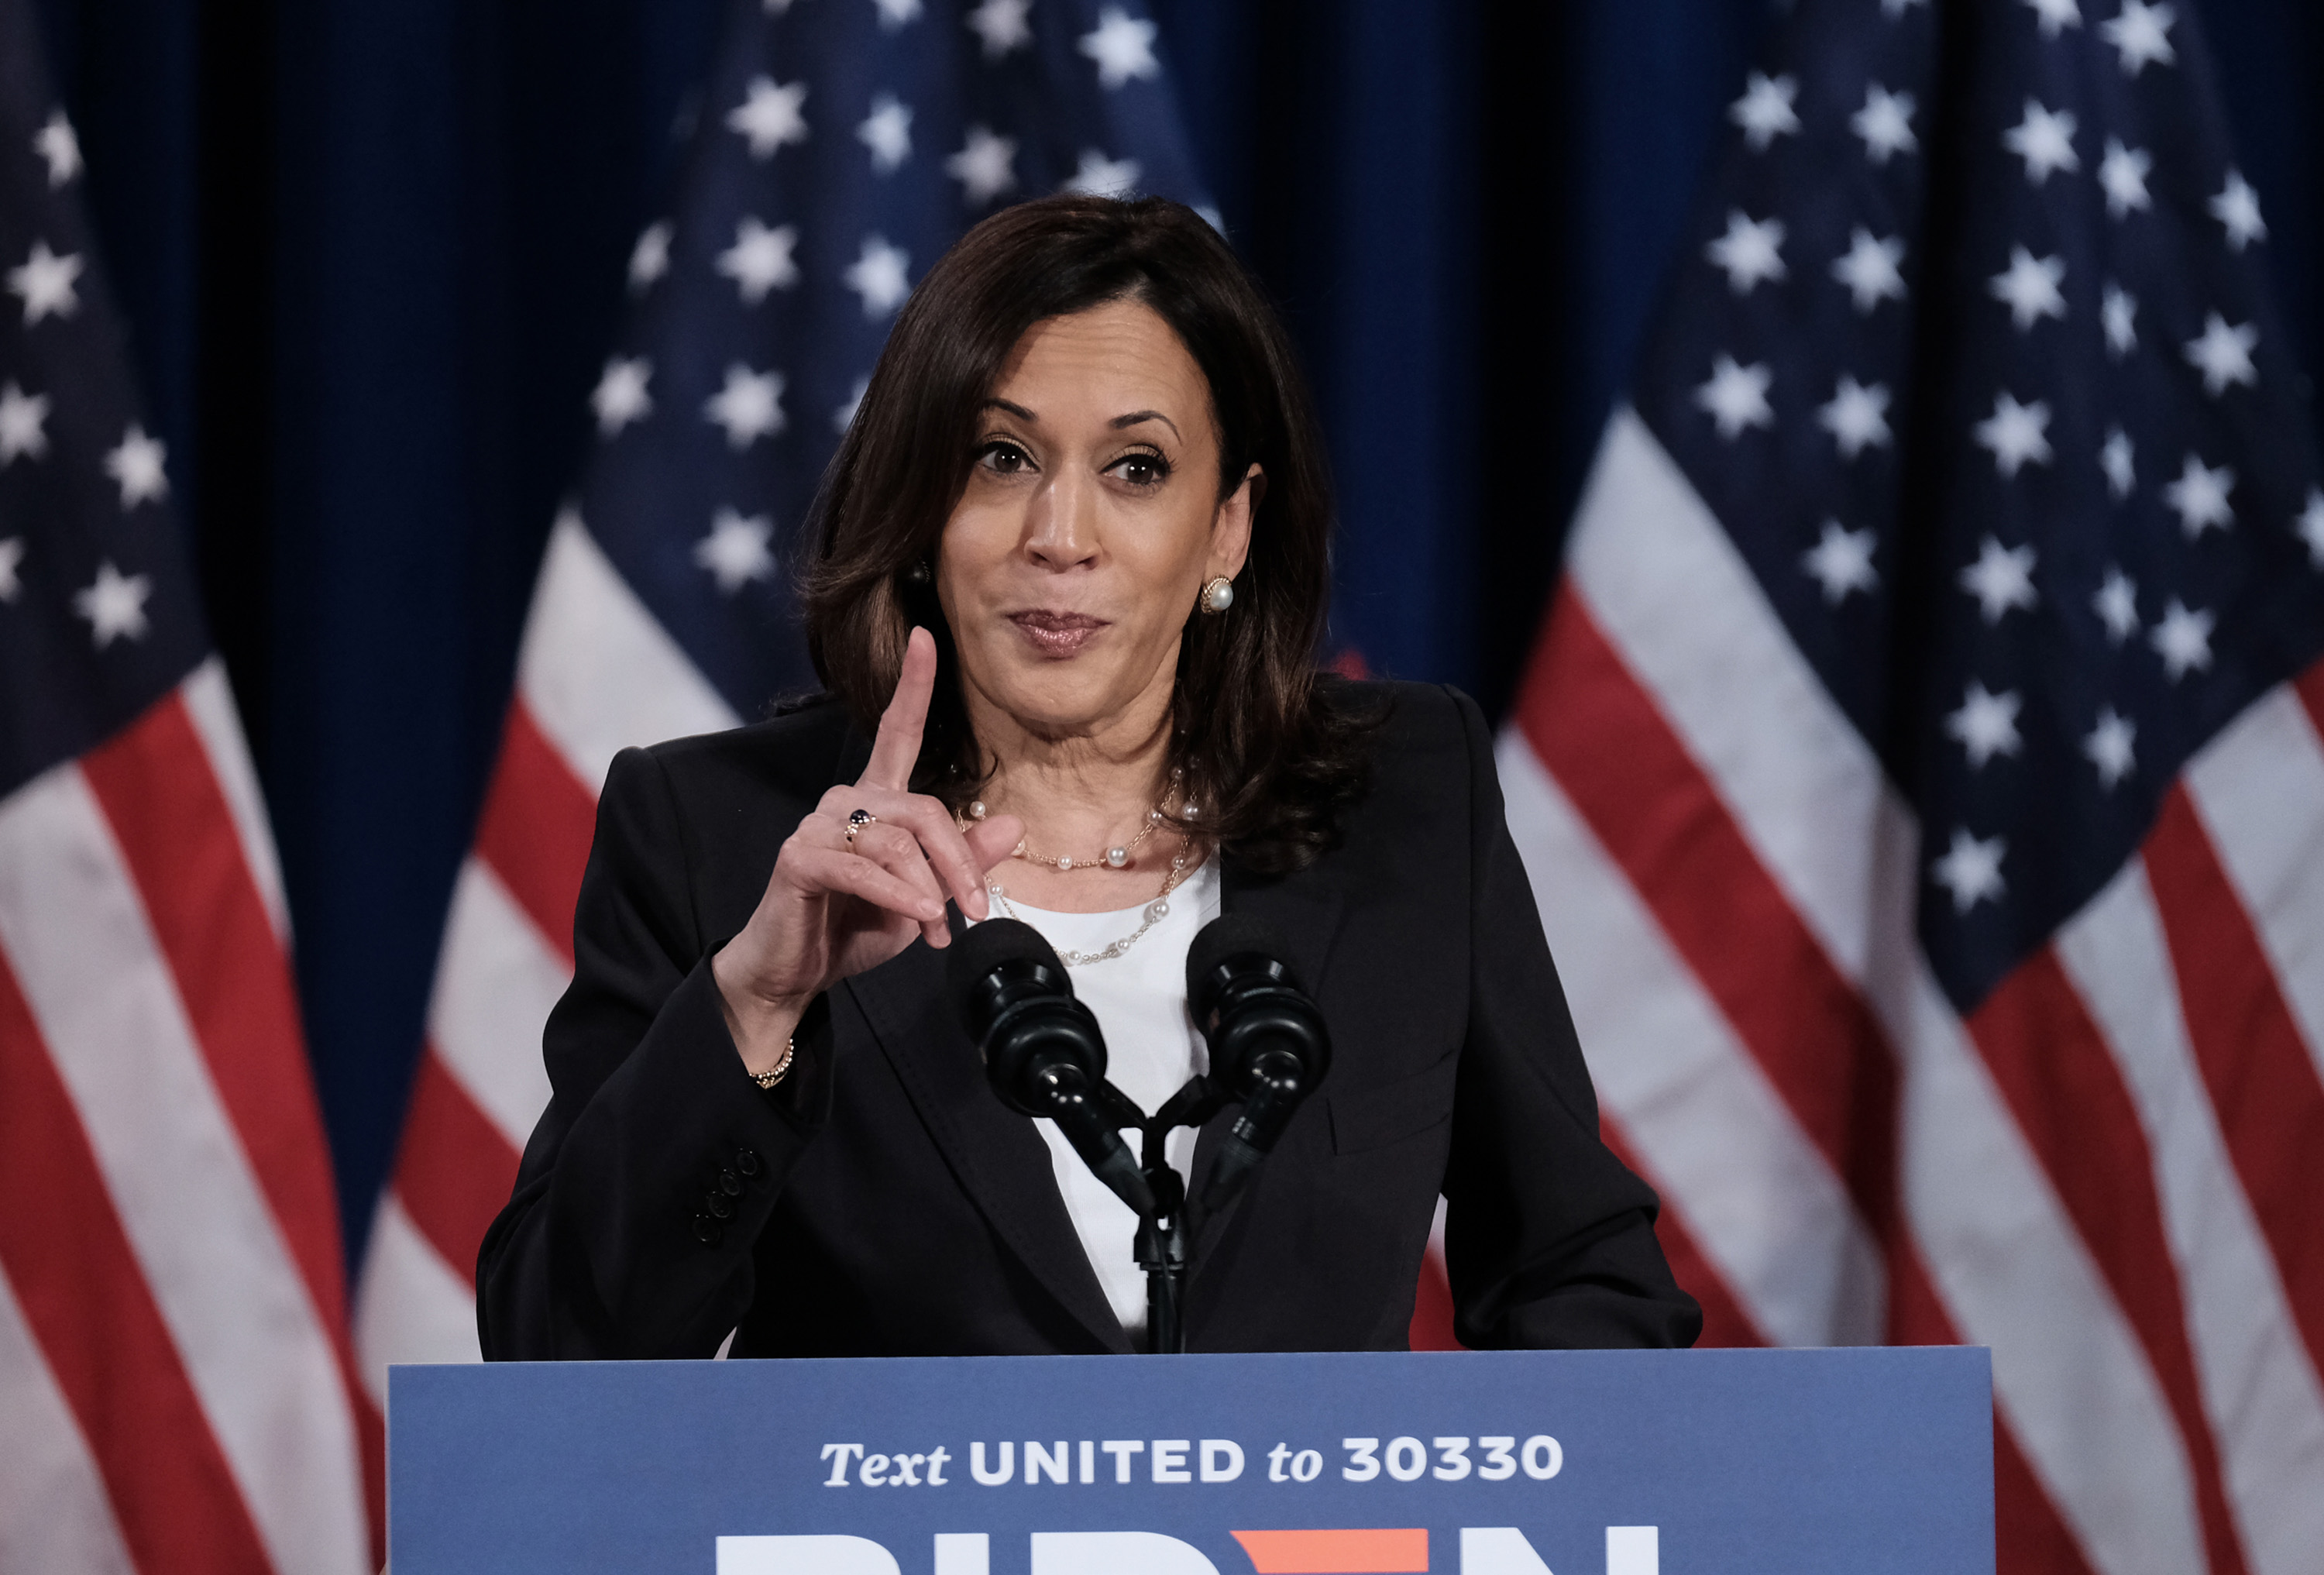 Where Kamala Harris Stands On The Issues Race Policing Health Care And Education Chicago Tribune